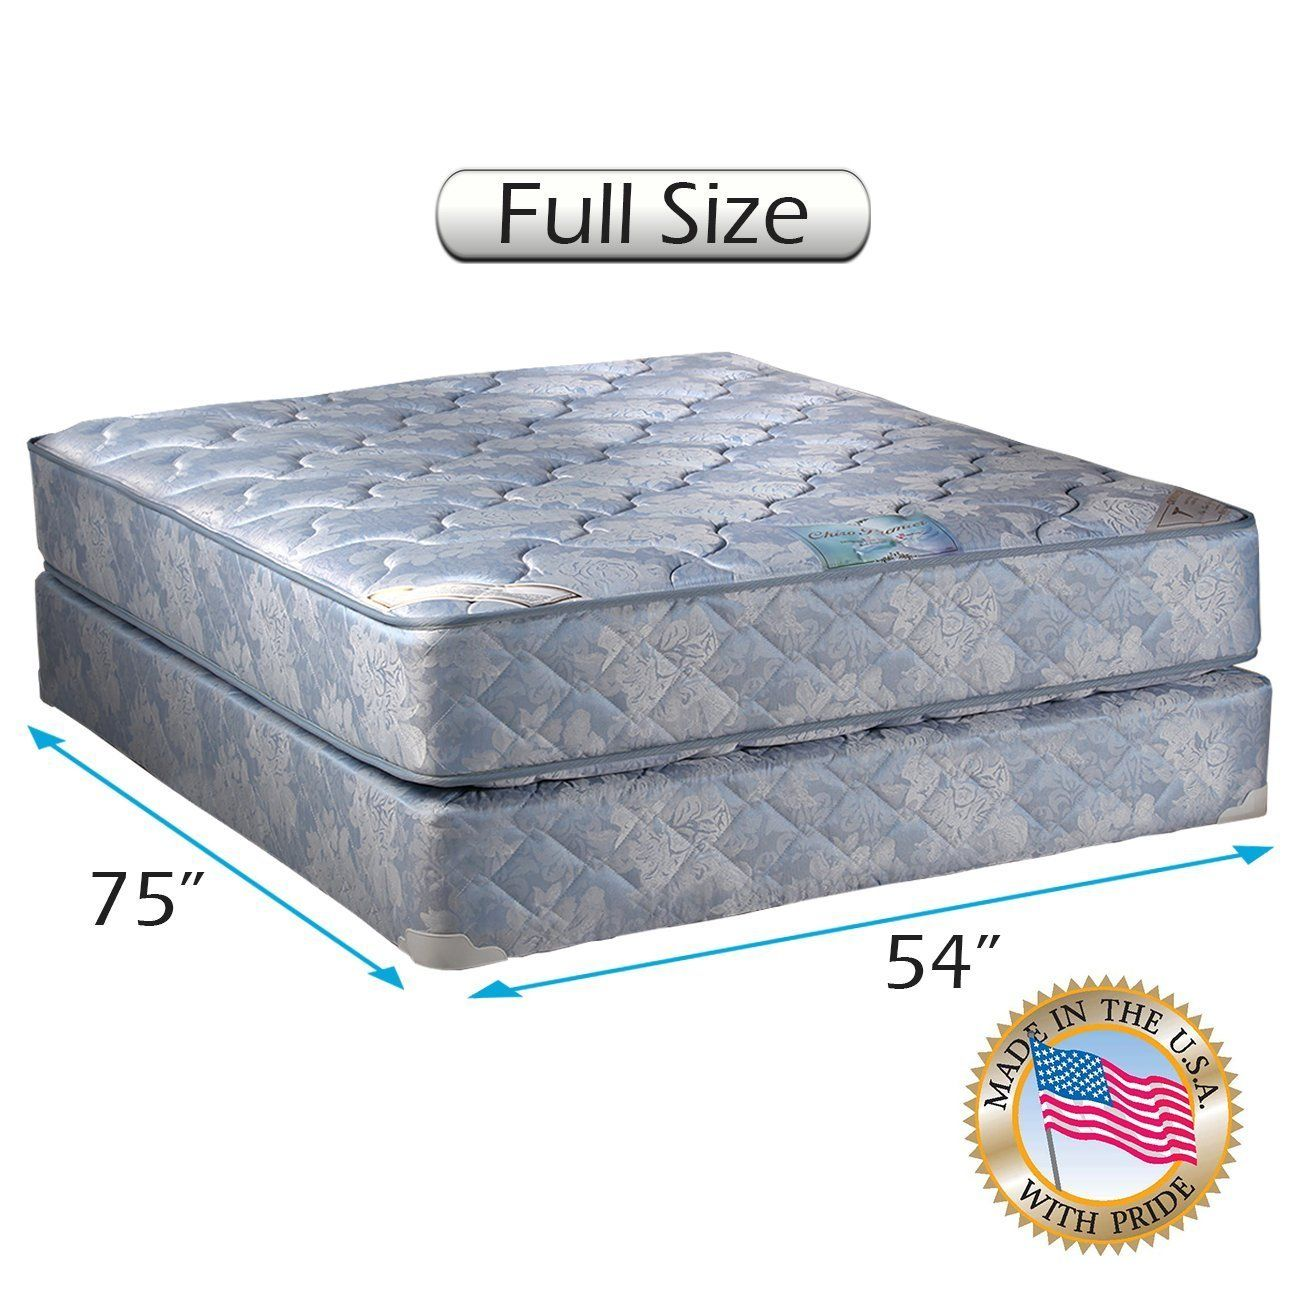 Chiro Premier Orthopedic Blue Color Full Size Mattress And Box Spring Set Fully Assembled Good For Your Back Superior Mattress Box Springs Mattress Box Spring